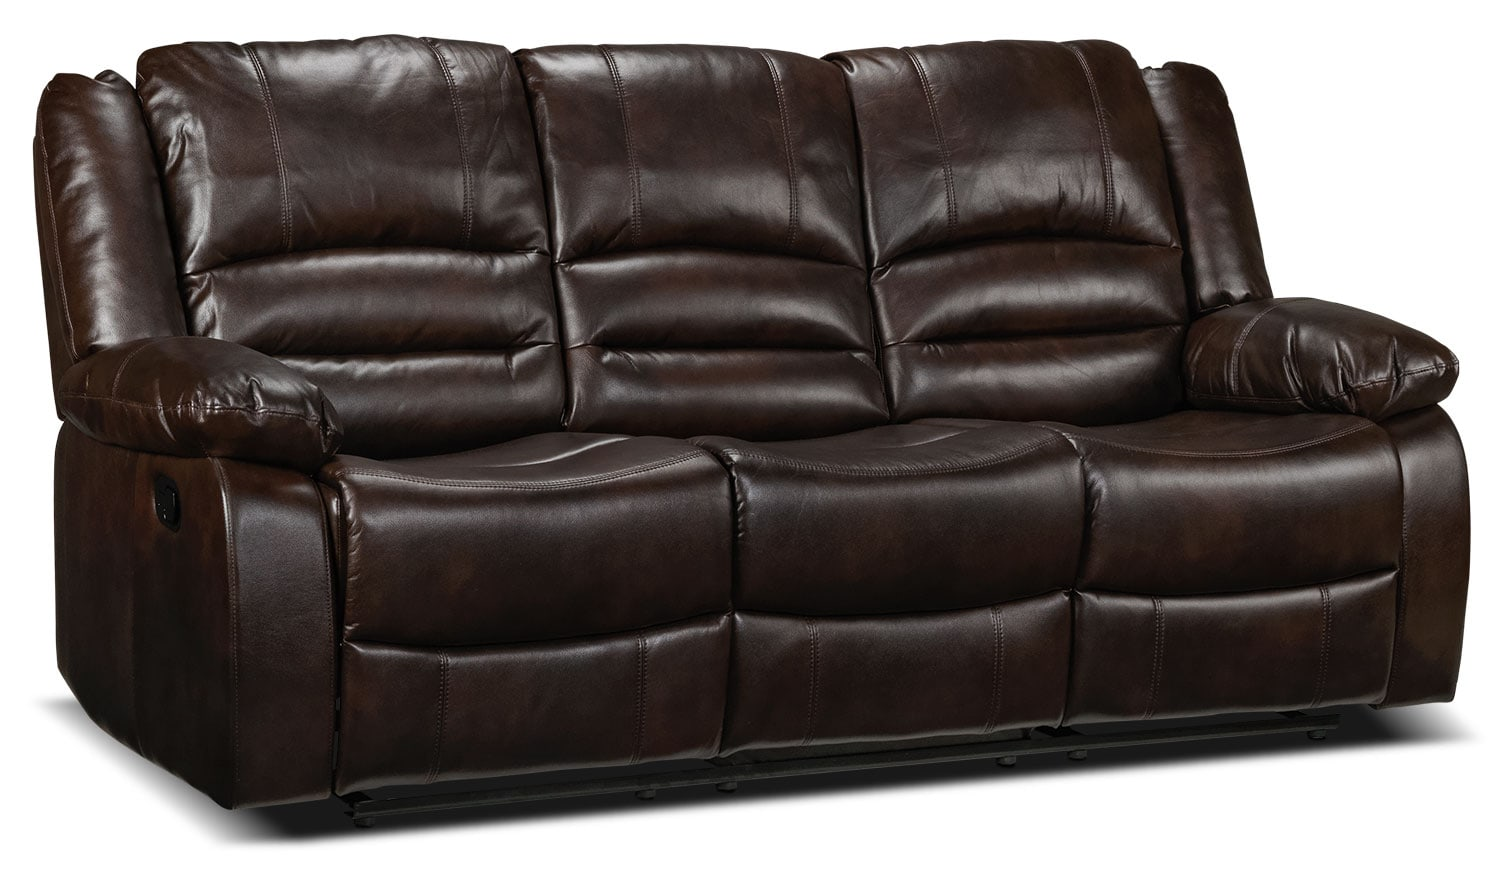 Living Room Furniture - Brooksdale Reclining Sofa - Deep Brown